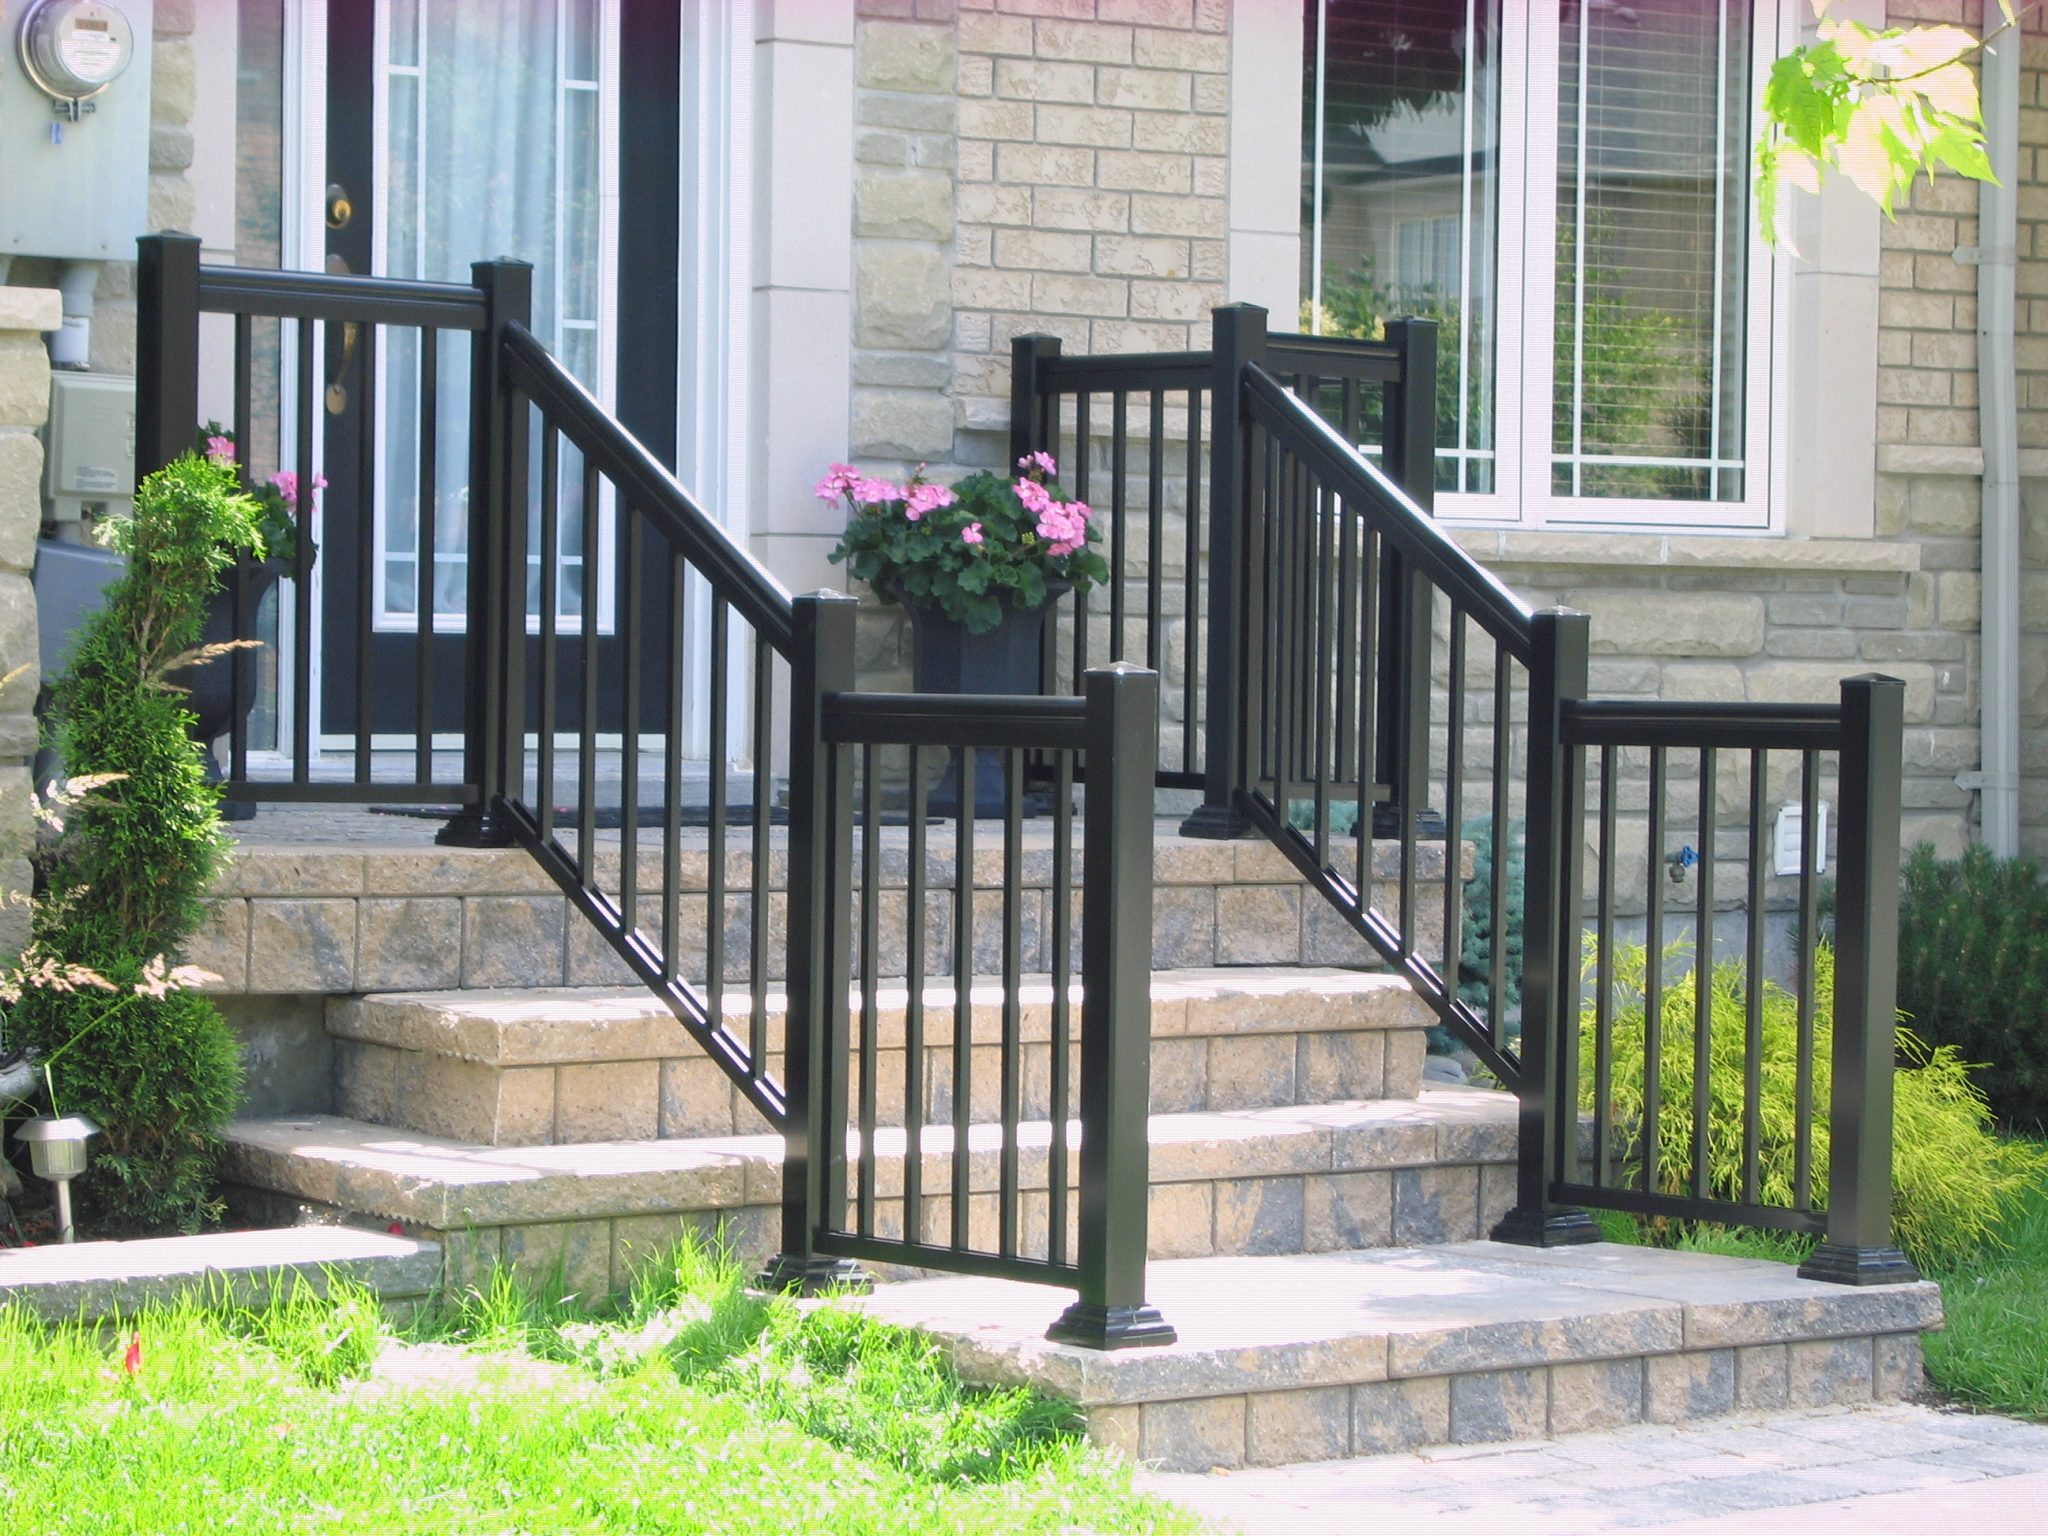 Steps with aluminum railings